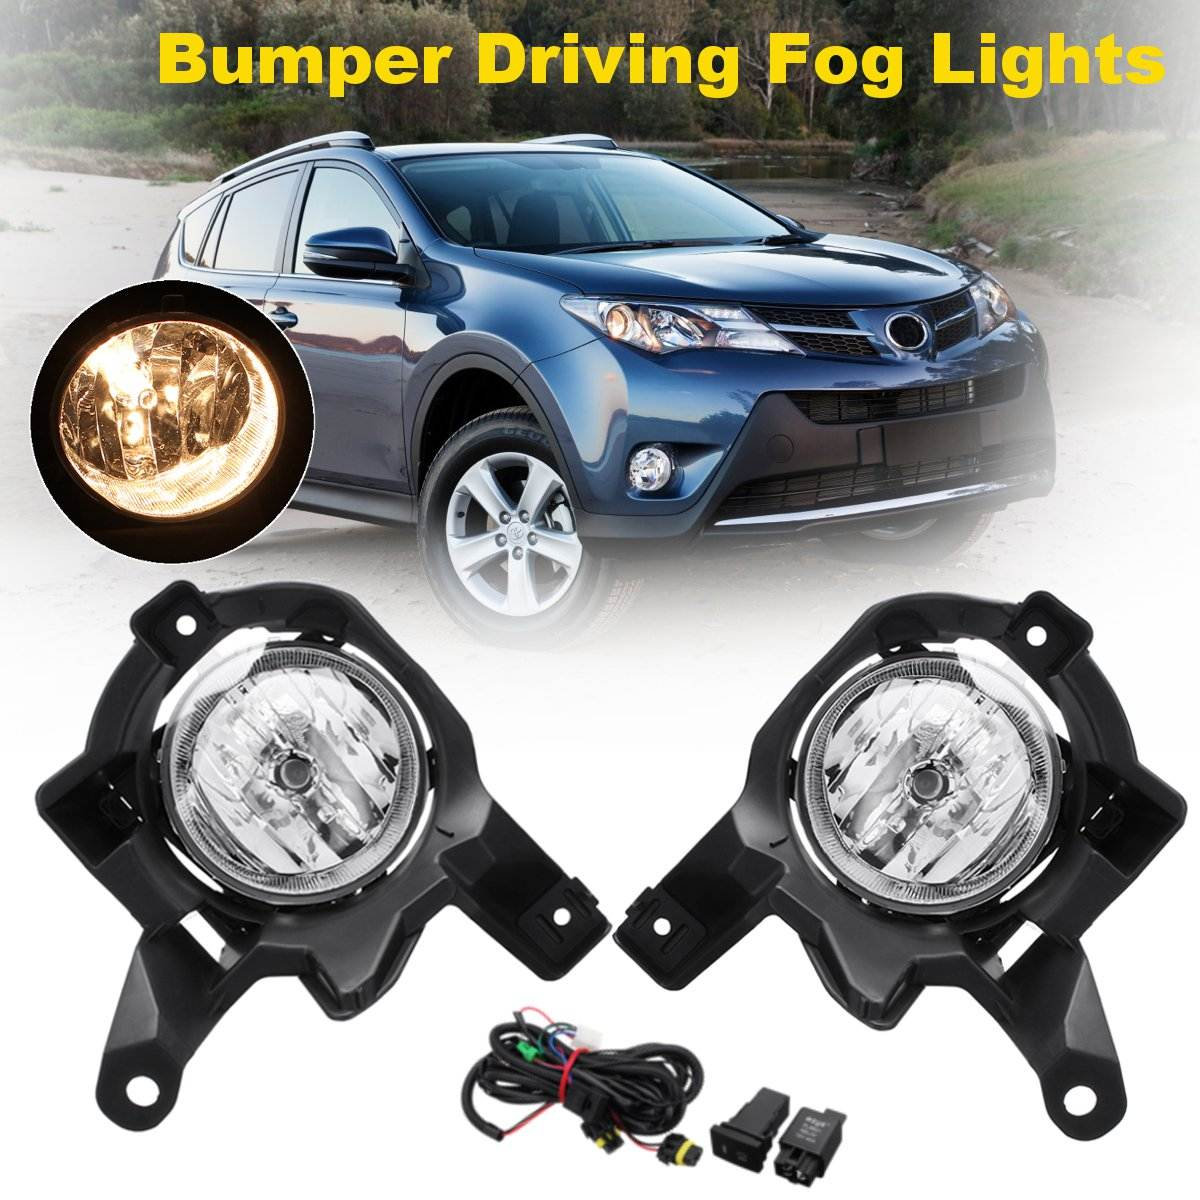 Front Left Right Pair DC 12V 55W H11 Amber Clear Bumper Driving Fog Lights w/ Wiring Harness For Toyota RAV4 2013 2014 2015 fog light set 12v 55w car fog lights lamp for toyota hiace 2014 on clear lens wiring kit free shipping